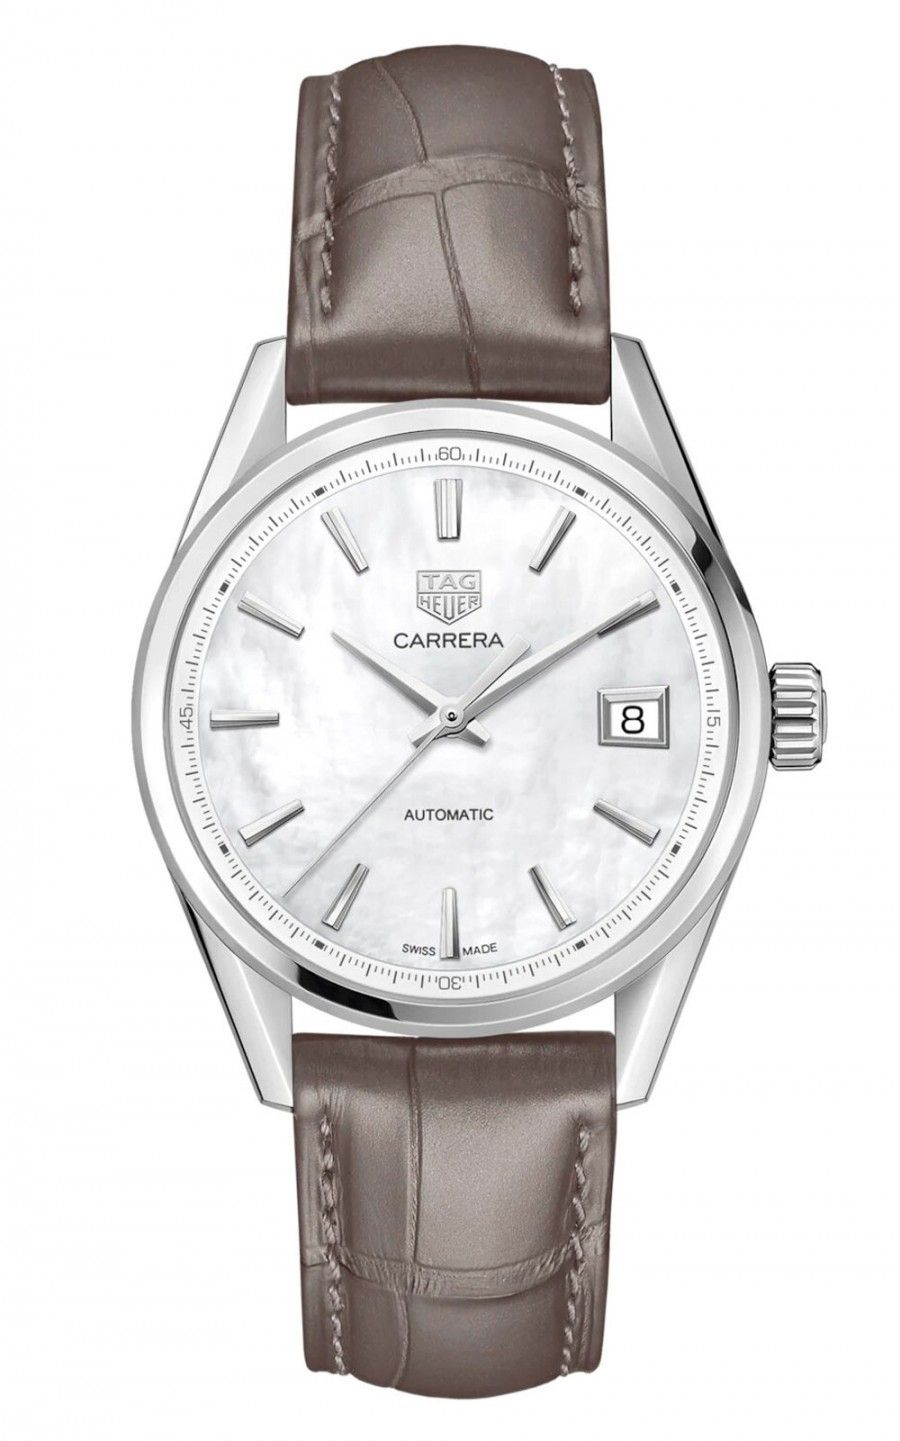 Hình Đồng hồ TAG HEUER CARRERA - Automatic Watch - Diameter 36 mm WBK2311.FC8258